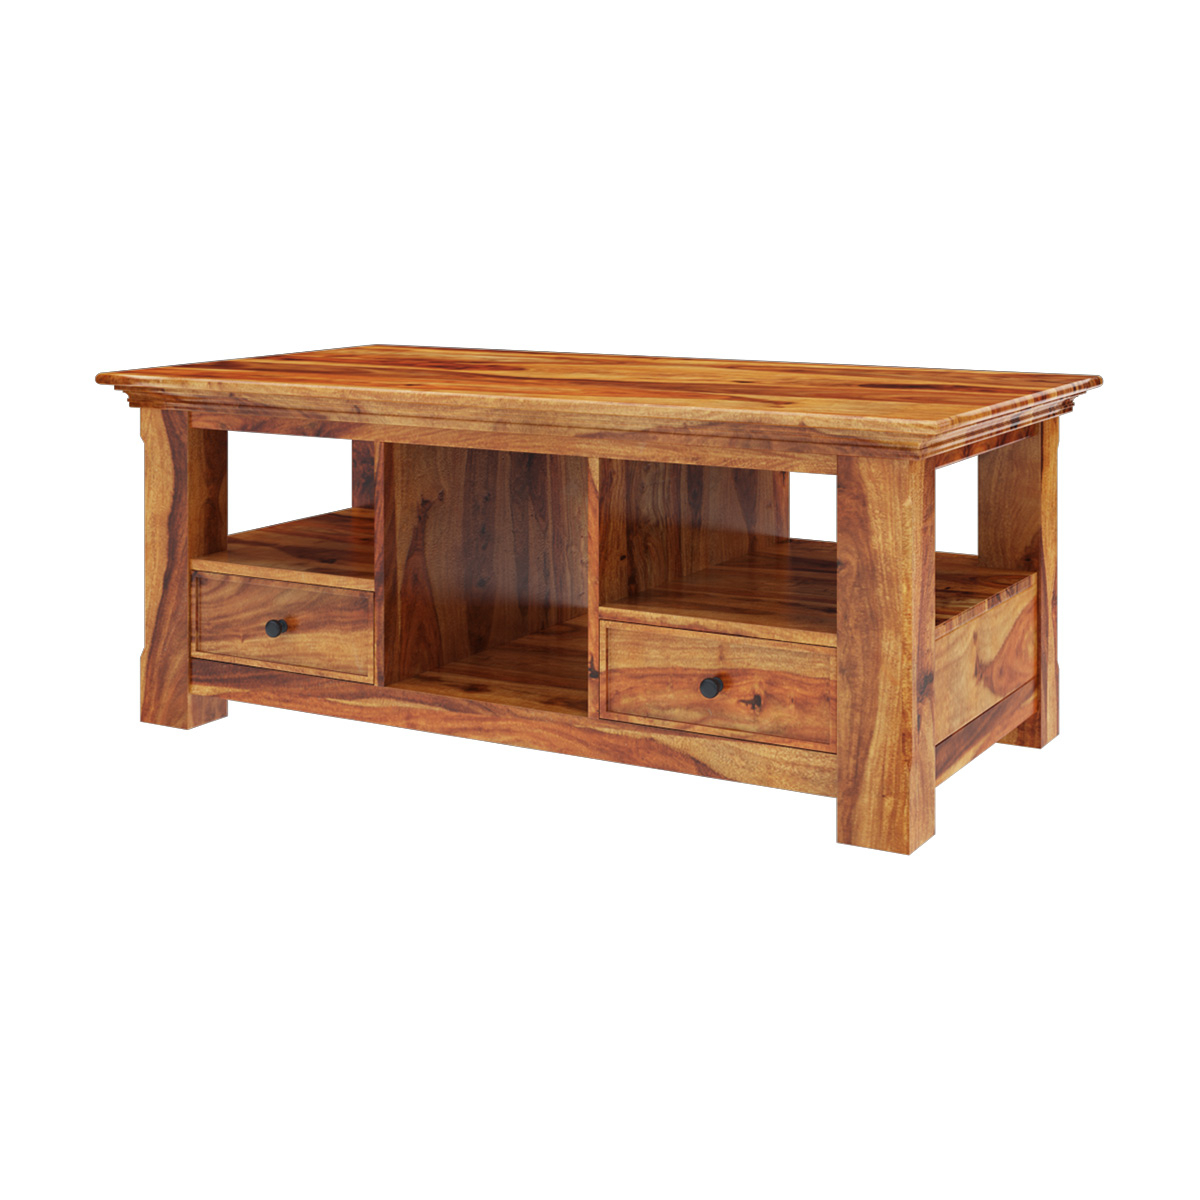 Modern Rustic Coffee Tables In Preferred Priscus Midcentury Modern Style Solid Wood Rustic Coffee Table (View 7 of 20)